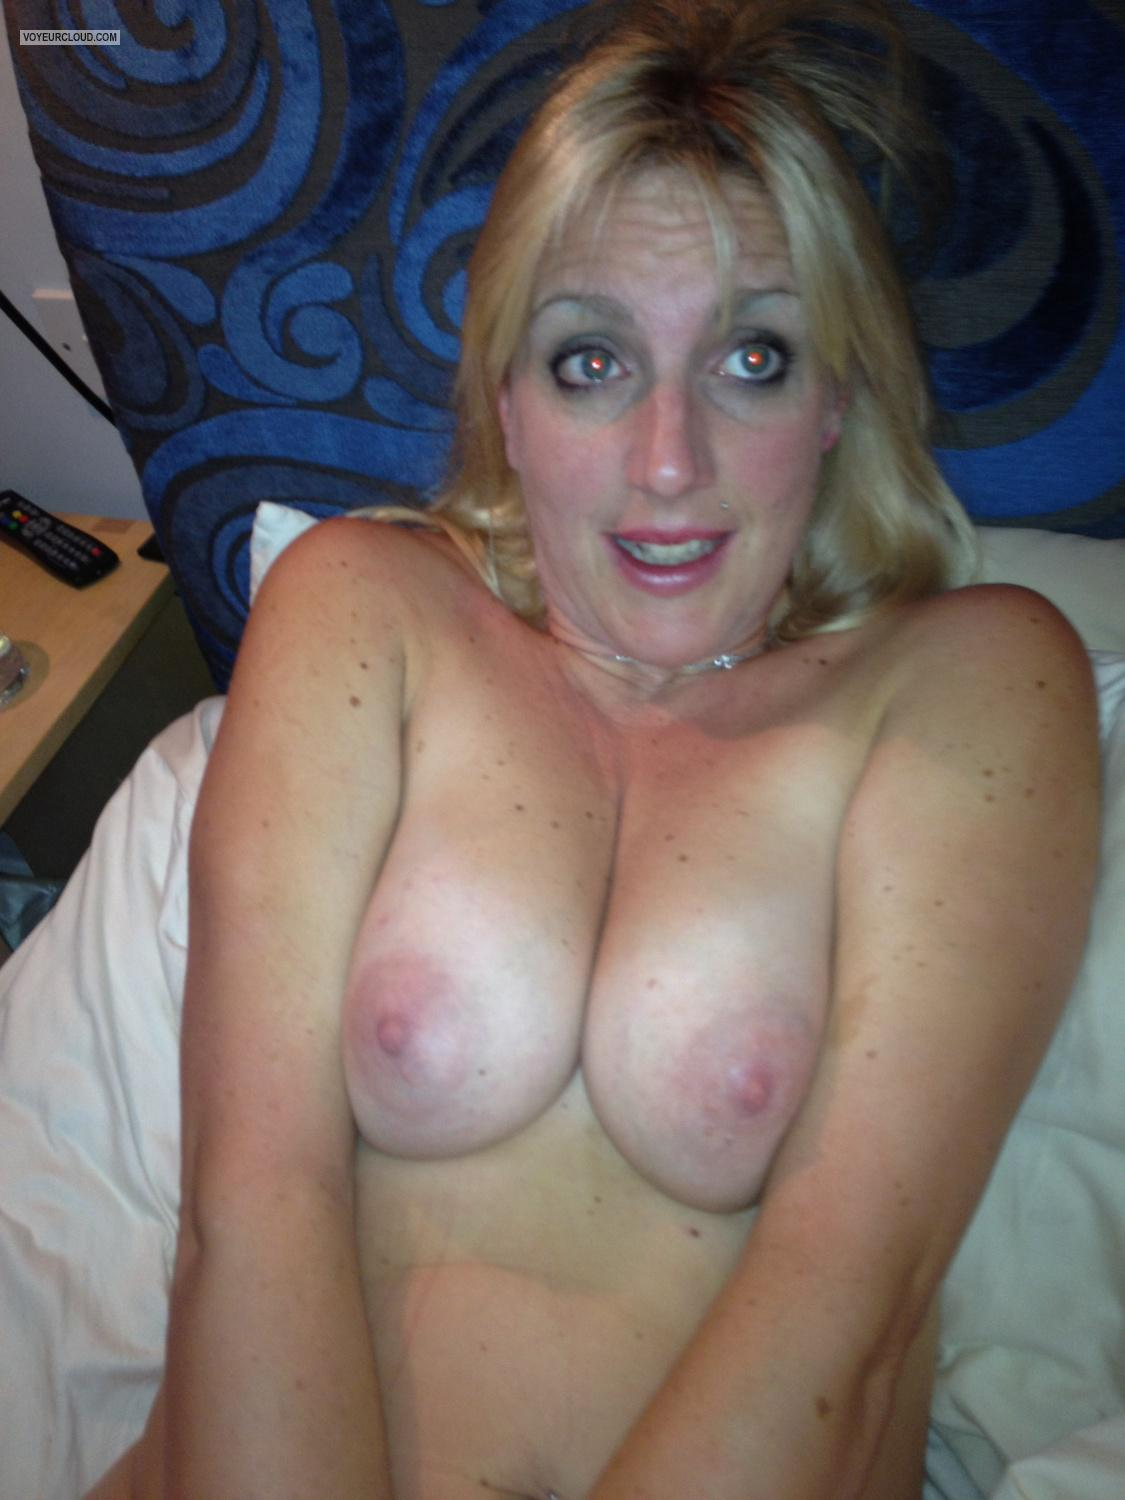 Medium Tits Topless Aamy